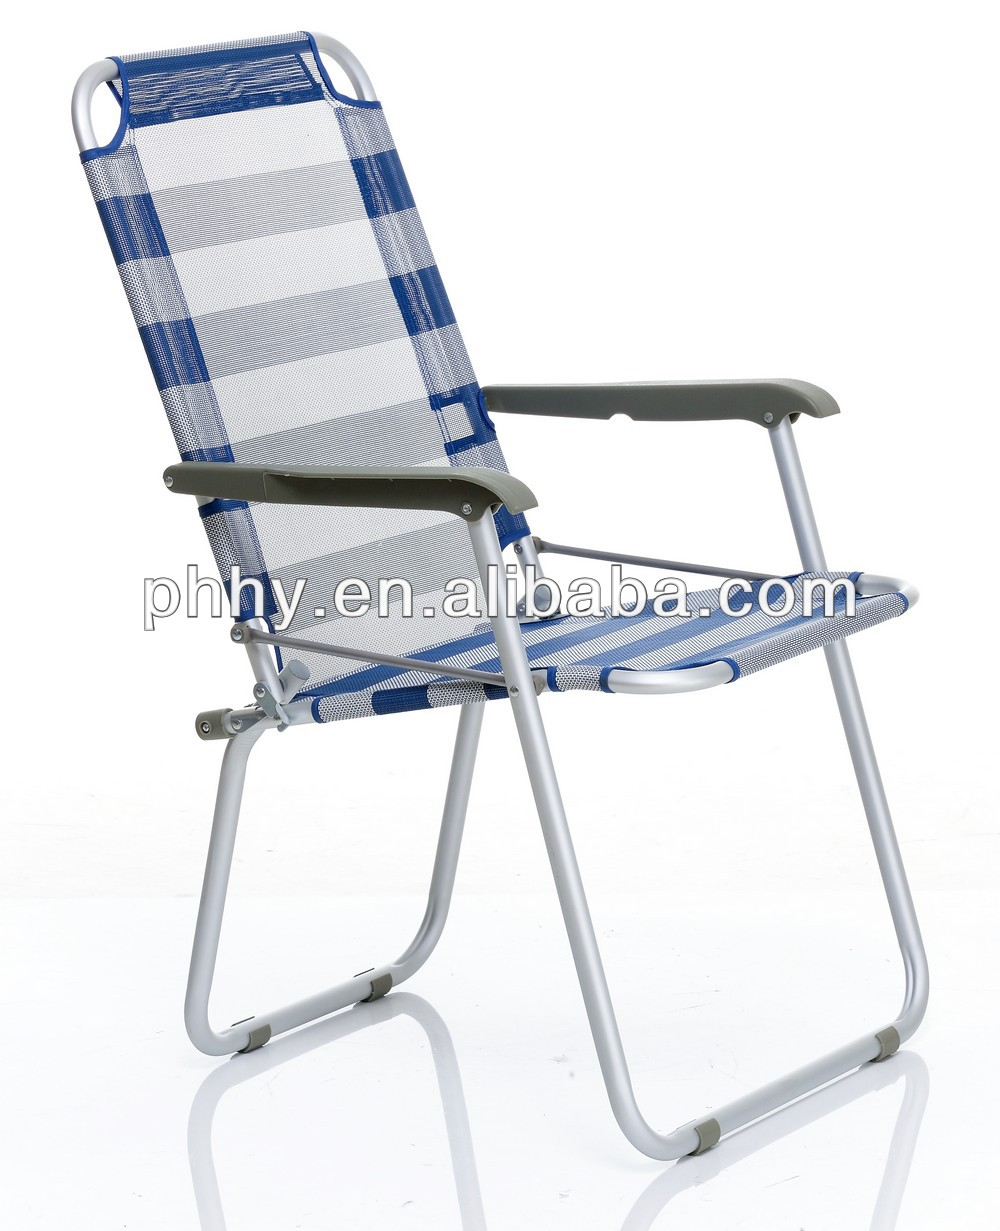 aluminum folding chair chair cing chair sun